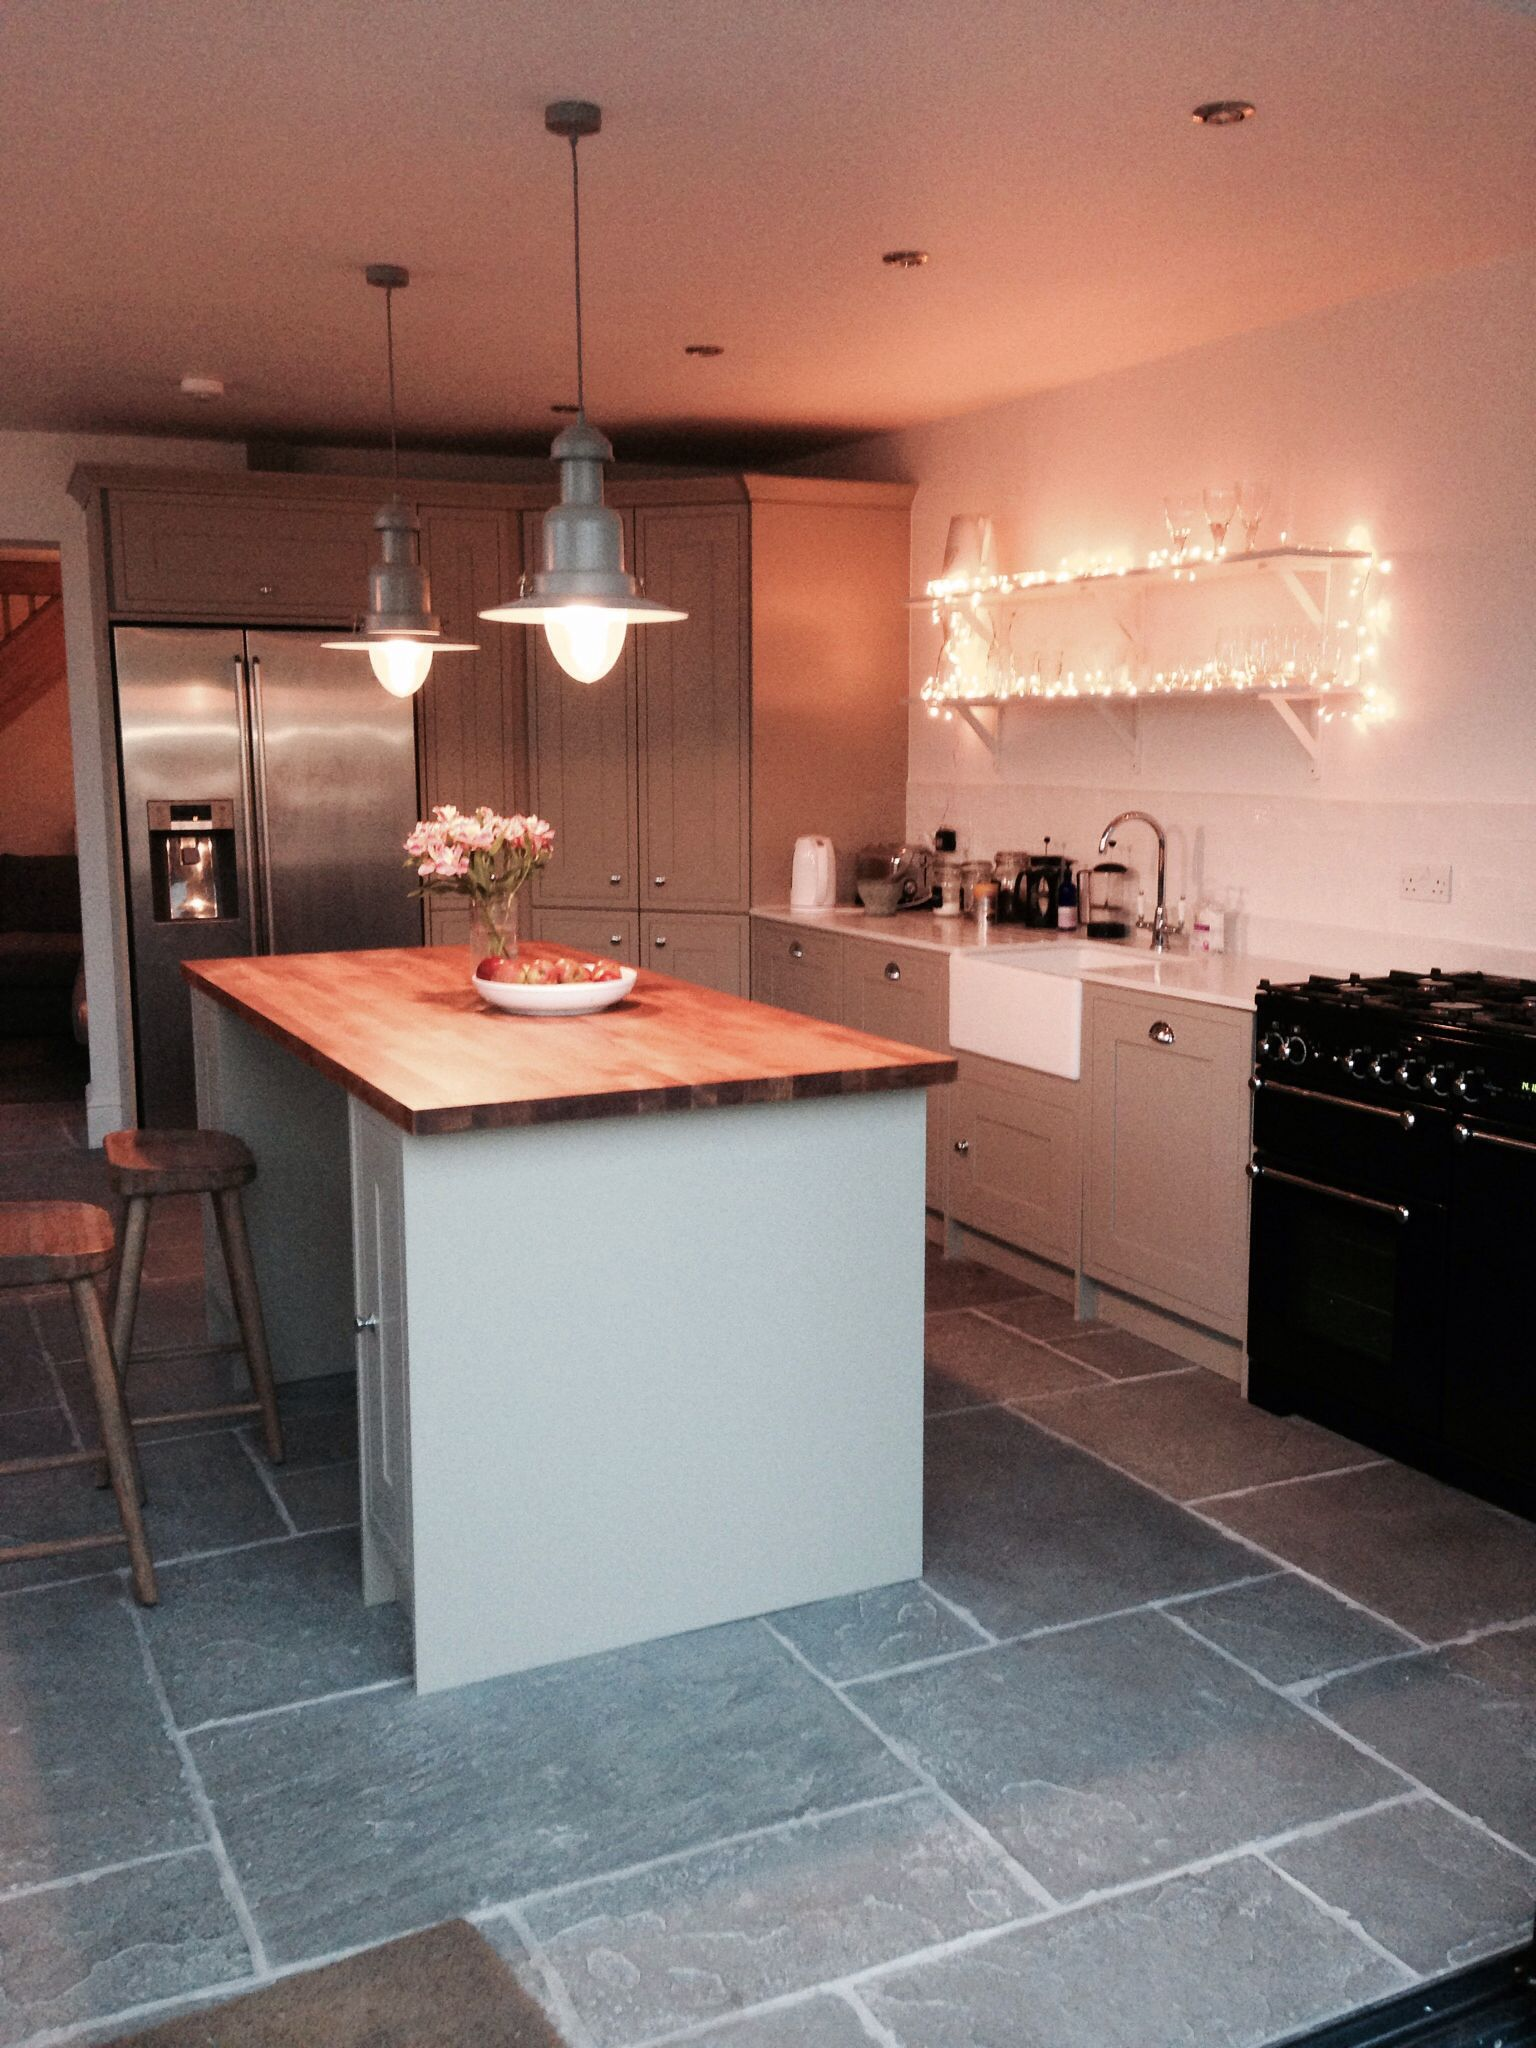 Kitchen wickes finished at last - heritage grey | Grey kitchen ...